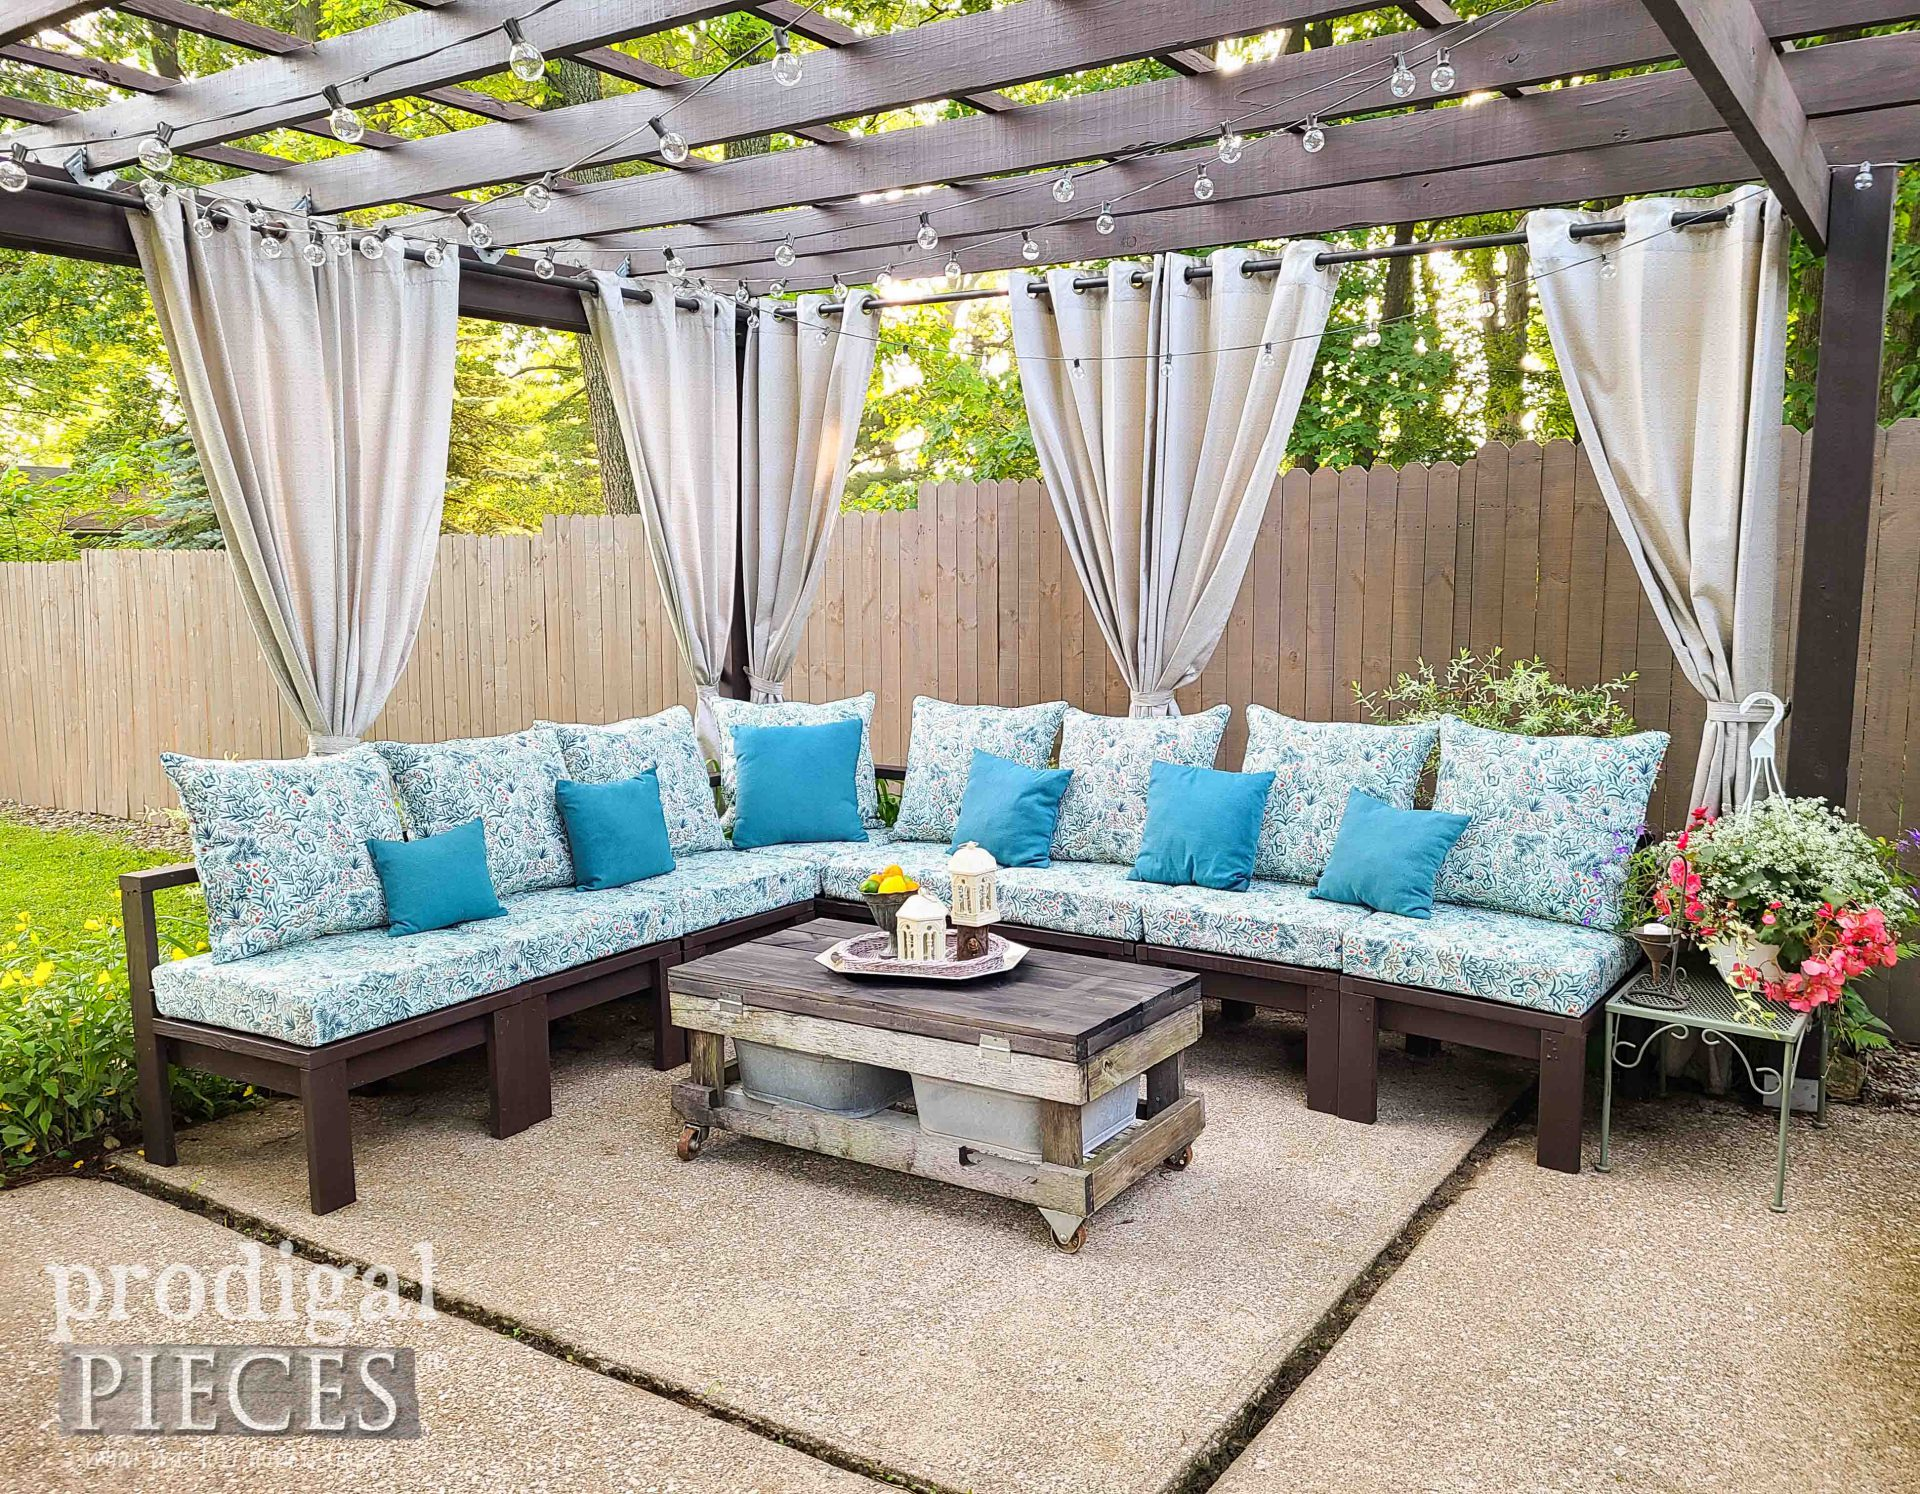 Finished DIY Patio Sectional by Prodigal Pieces | prodigalpieces.com #prodigalpieces #patio #diy #outdoor #entertaining